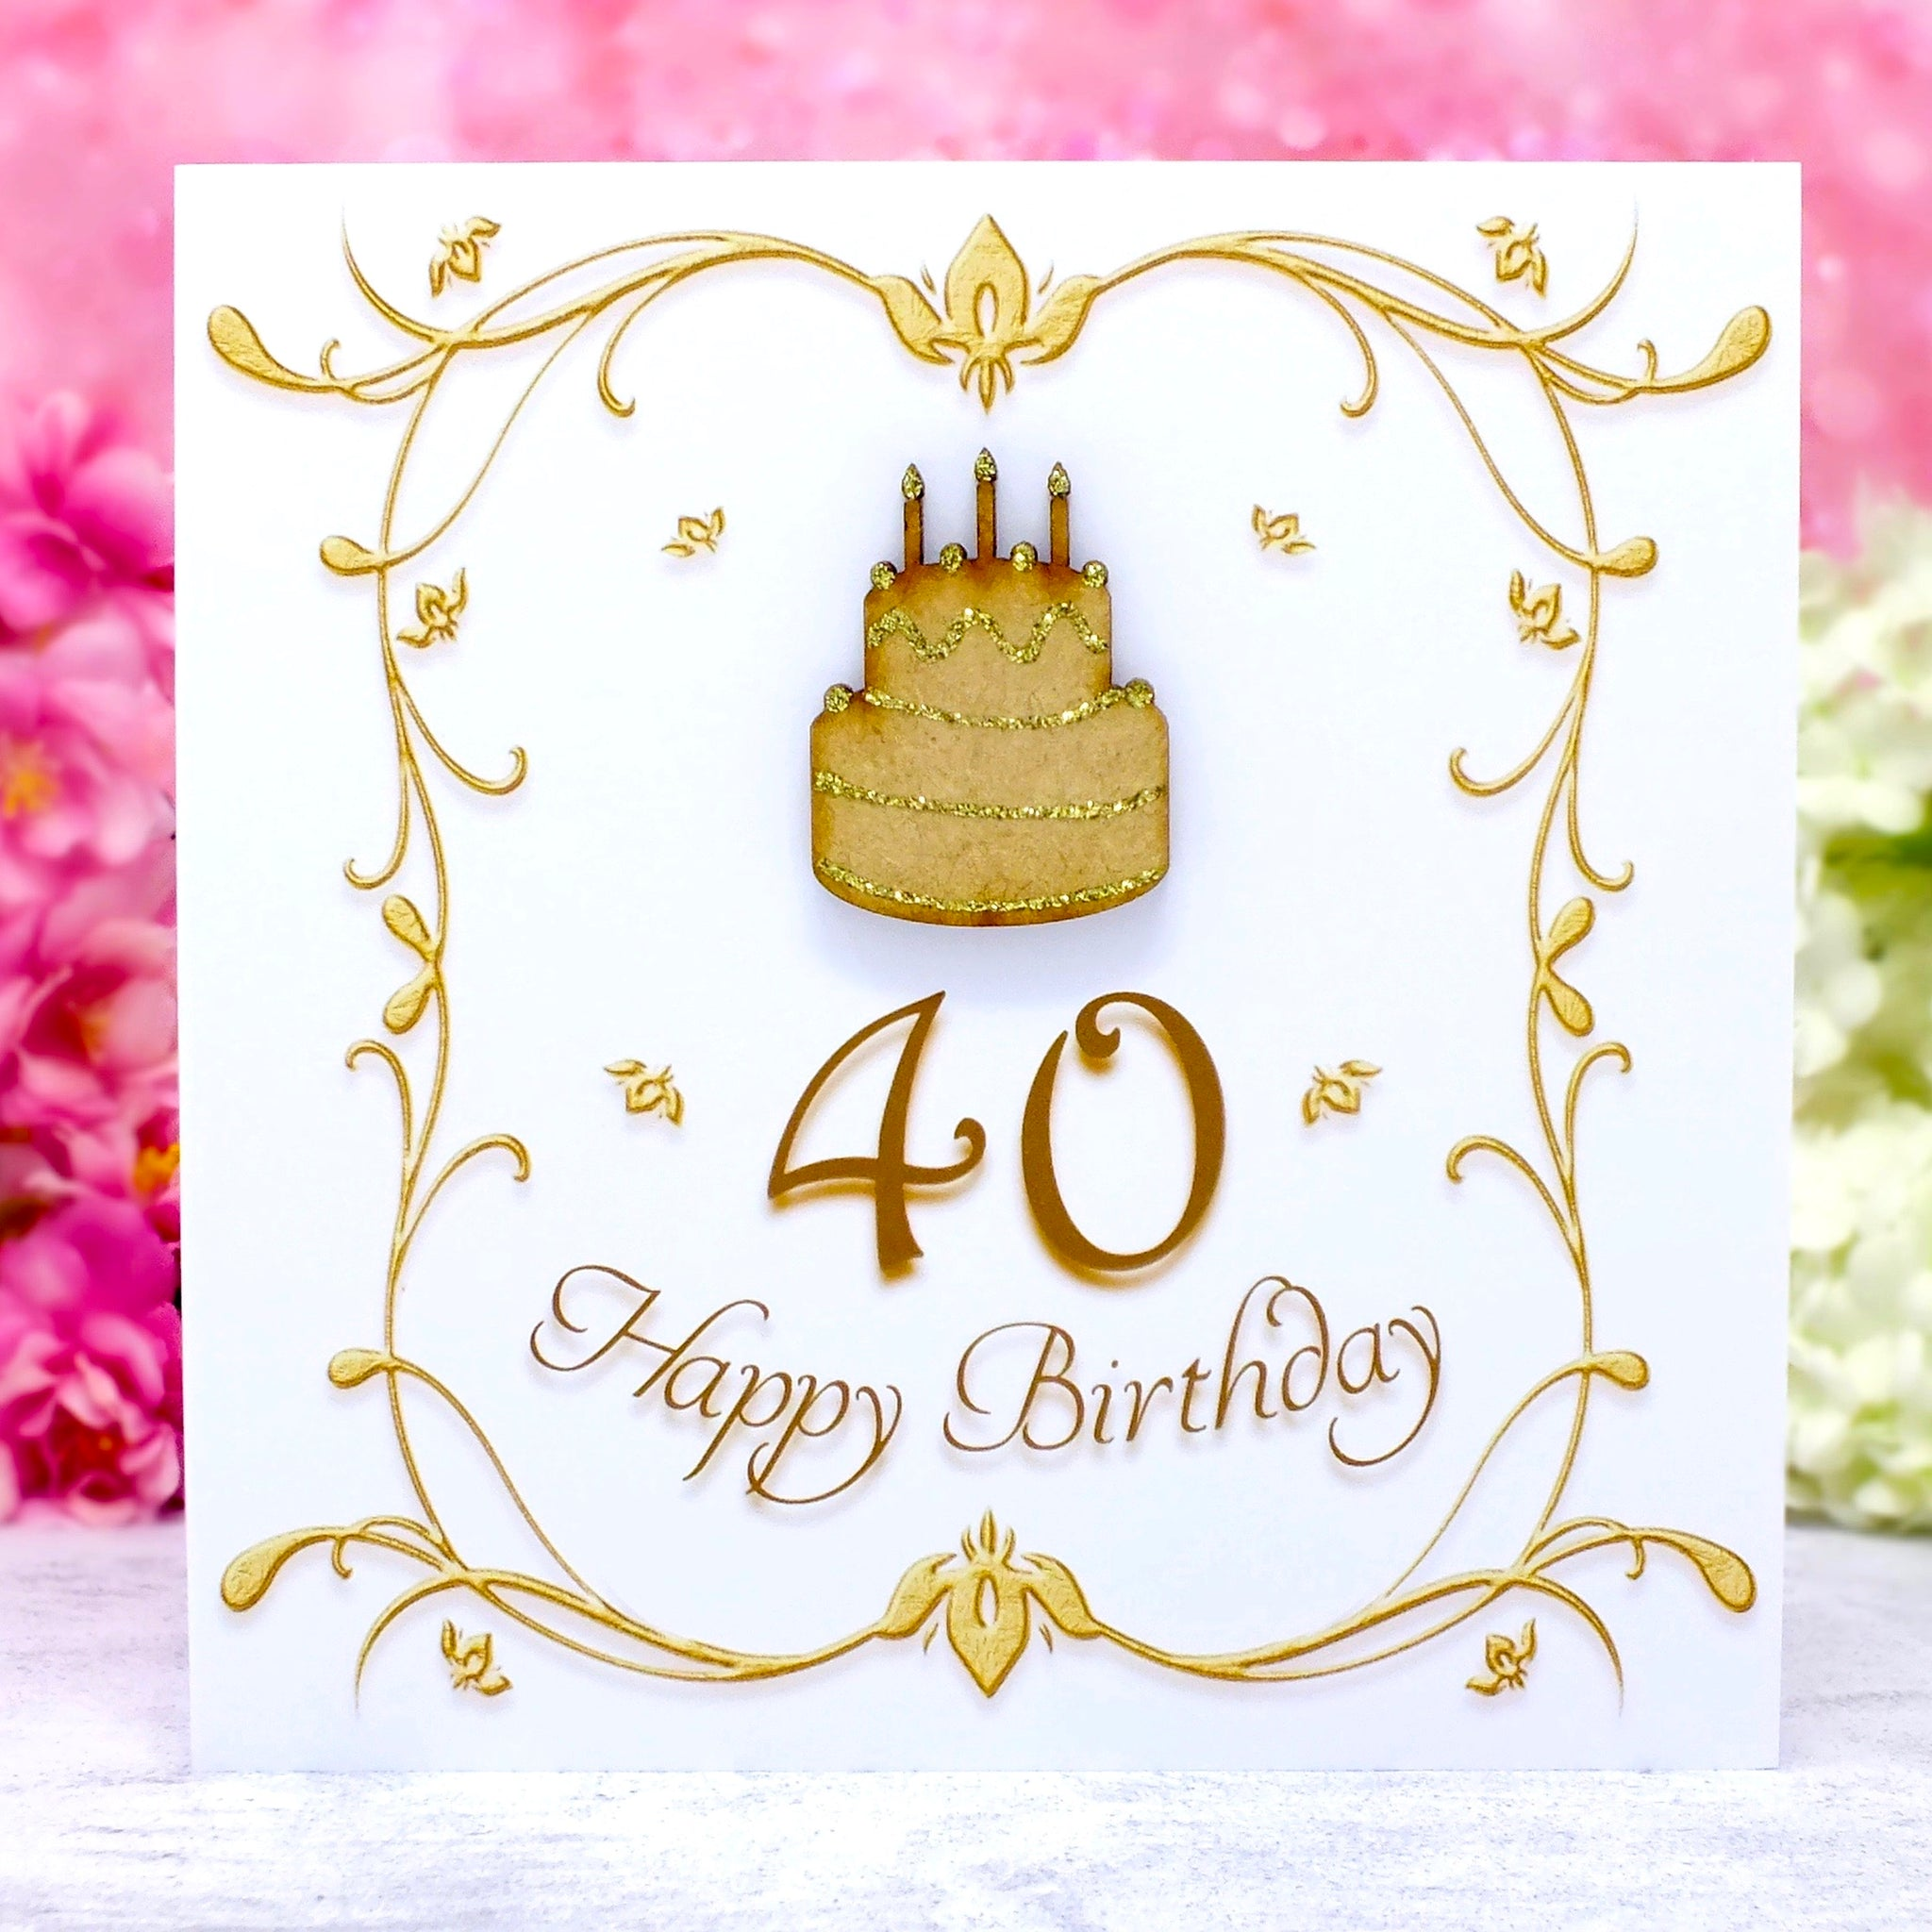 40th Birthday Card - Wooden Birthday Cake Main